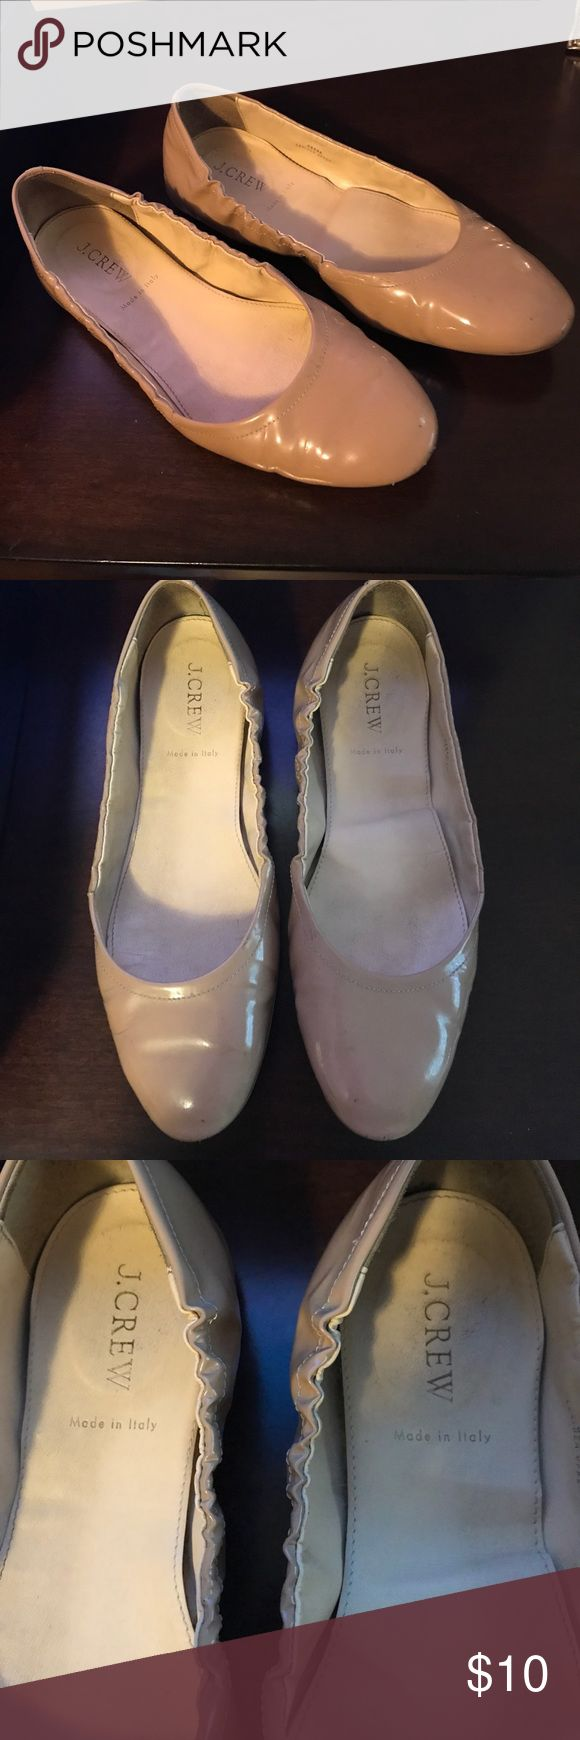 J Crew patent leather nude flat size 8 J Crew patent leather nude flat size 8.  Wear on the heels and toes shown in pictures. And sole insert on left shoe is coming loose, but could be fixed. Still a great neutral ballet flat, selling as is. J. Crew Shoes Flats & Loafers